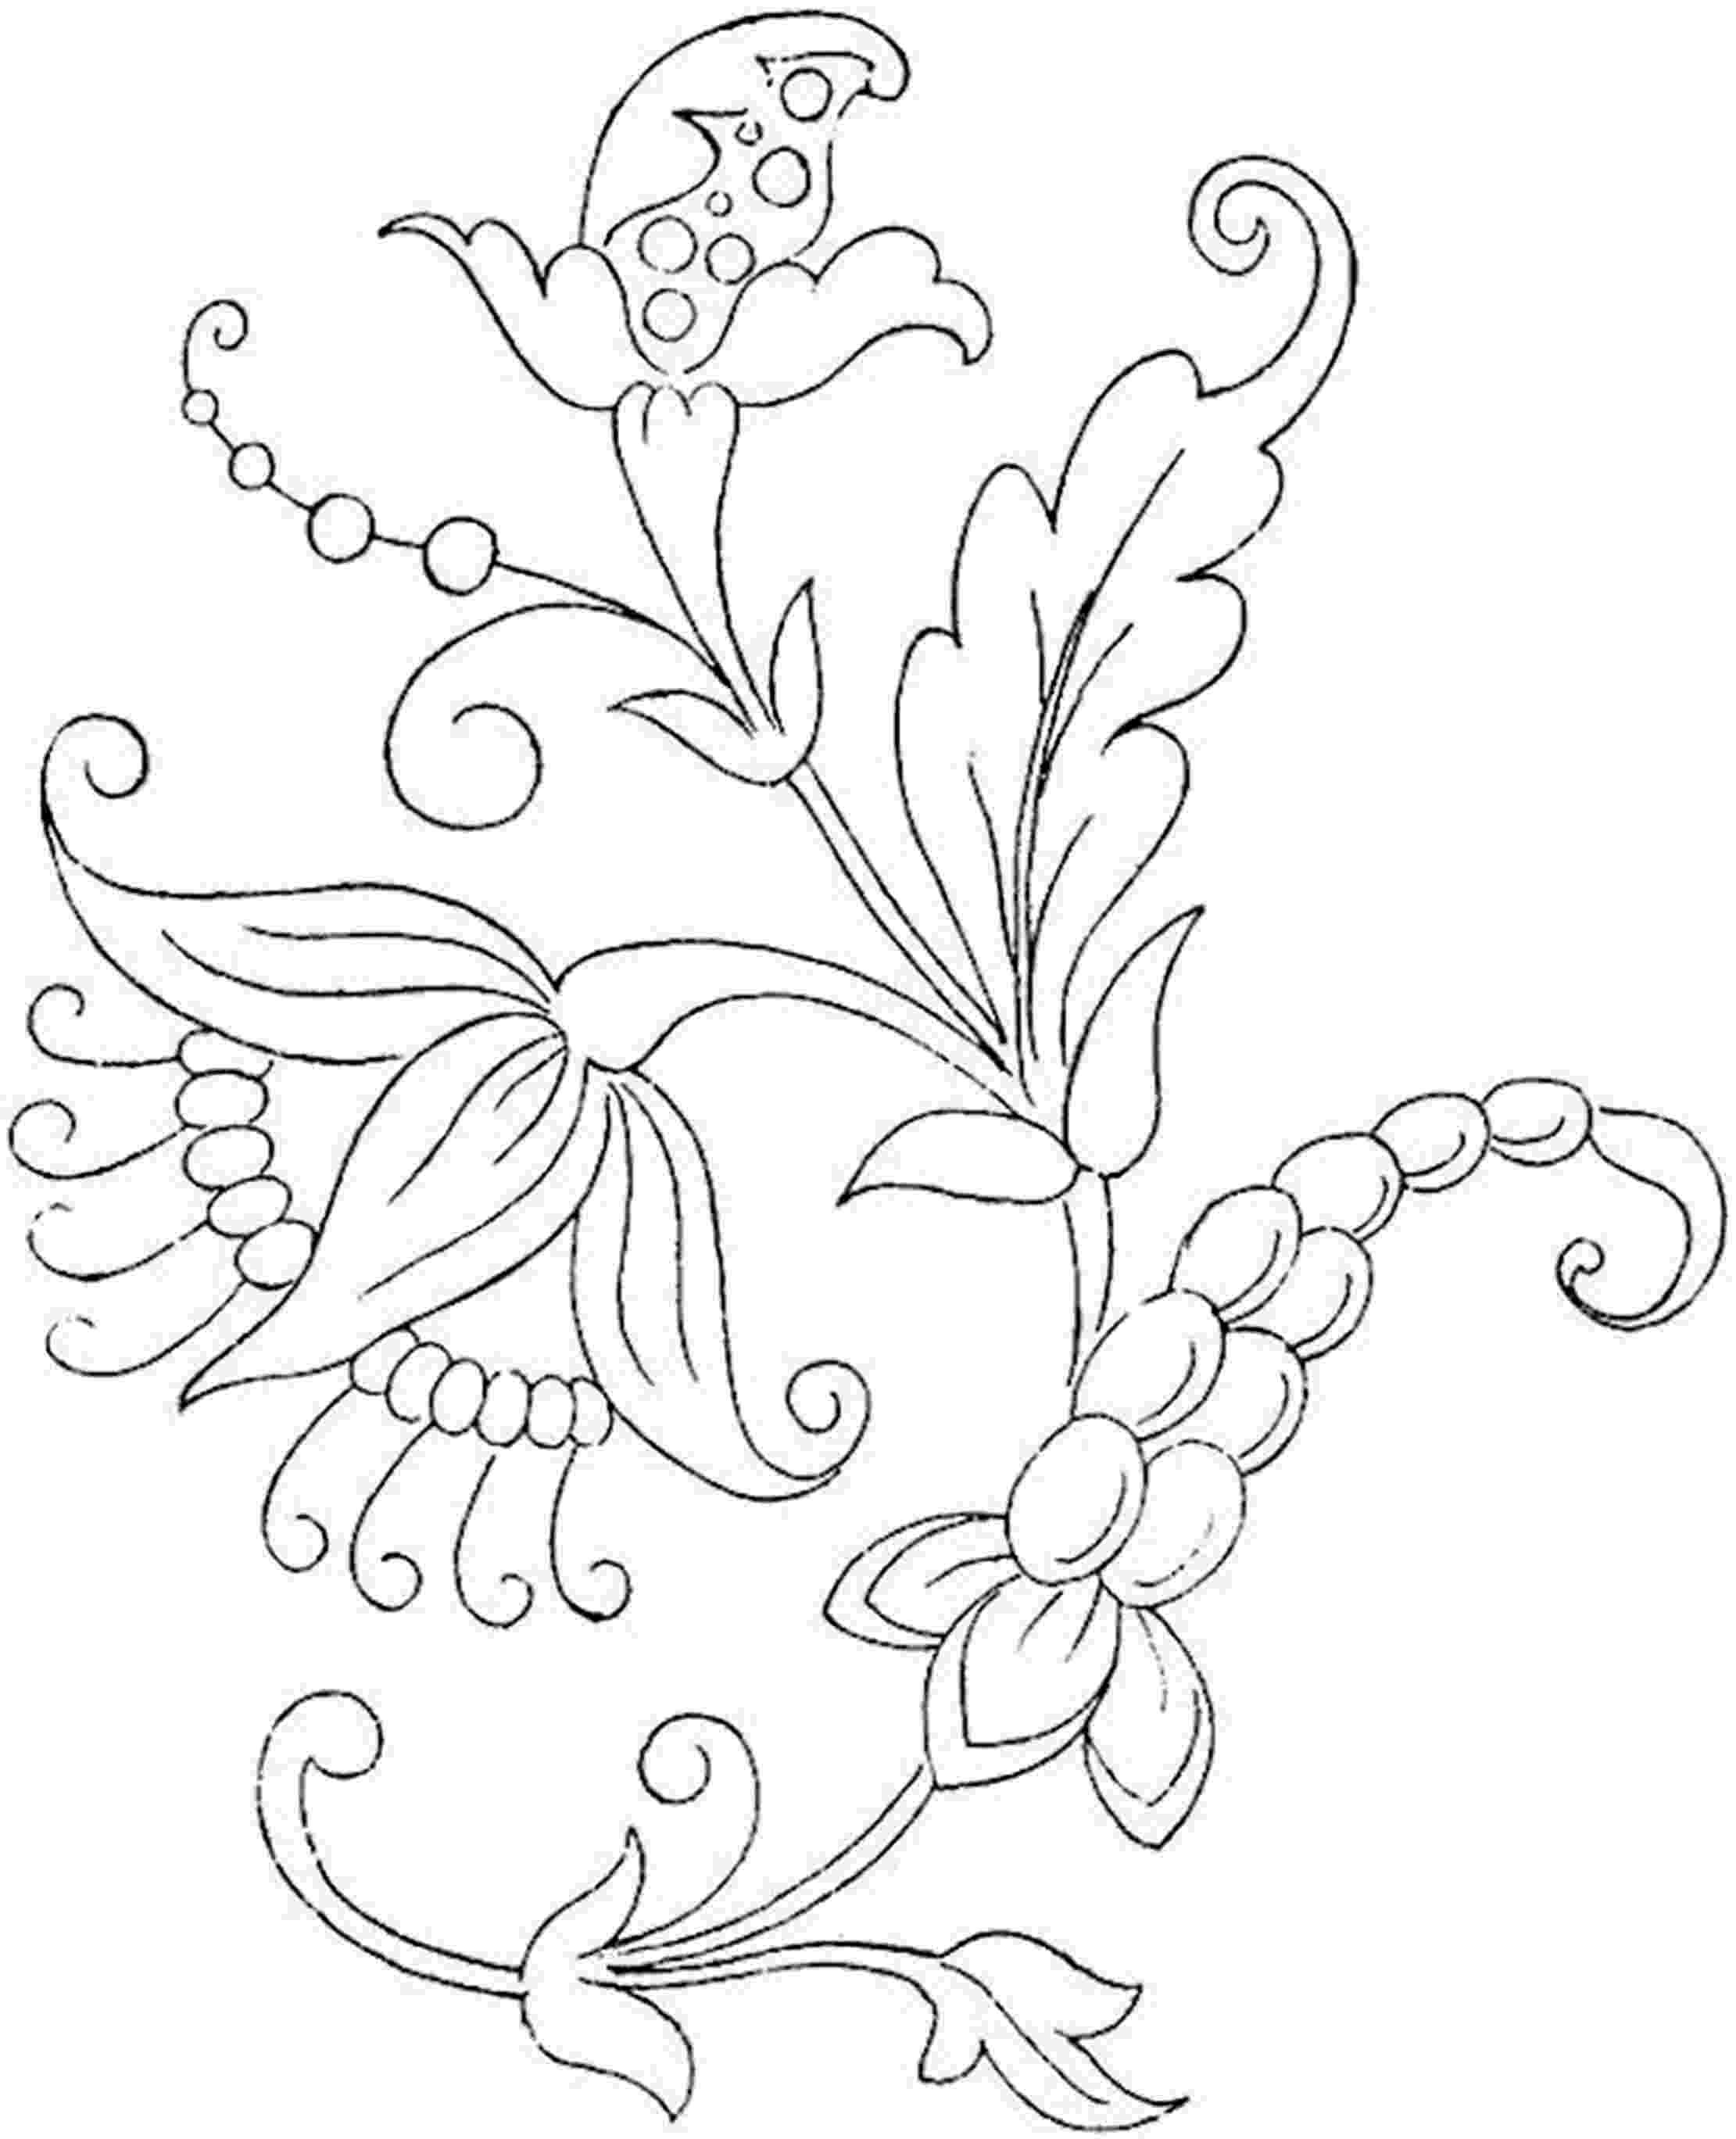 free printable flowers to color soccer wallpaper flower coloring pages to printable free color flowers